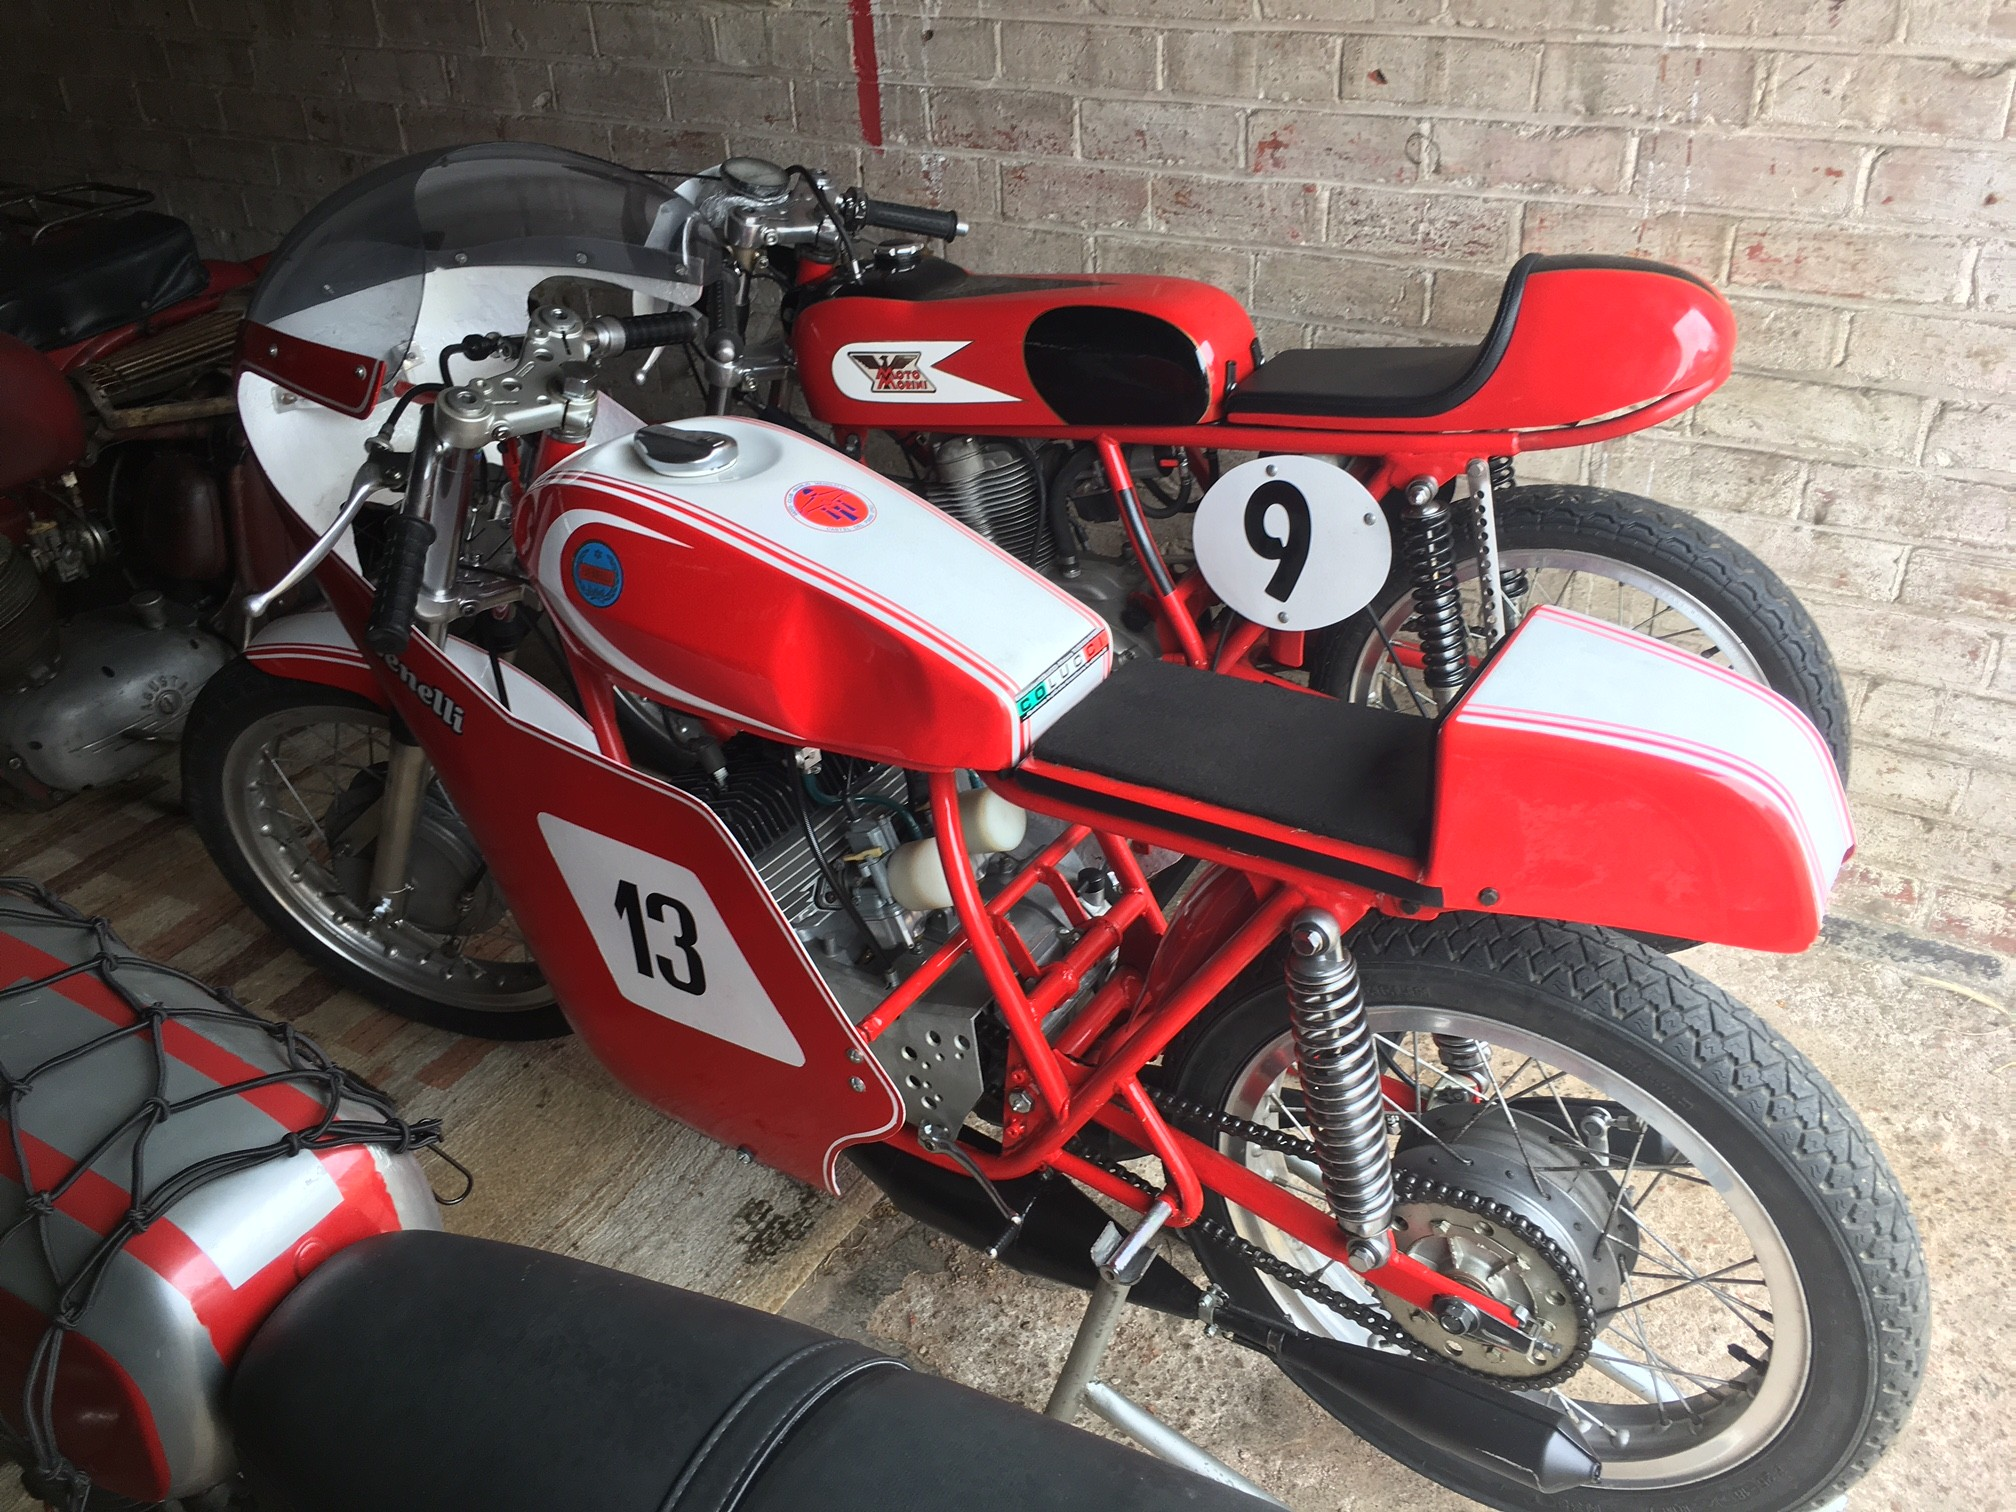 Benelli 500 Quattro And 250 2c Sport Corsa For Sale